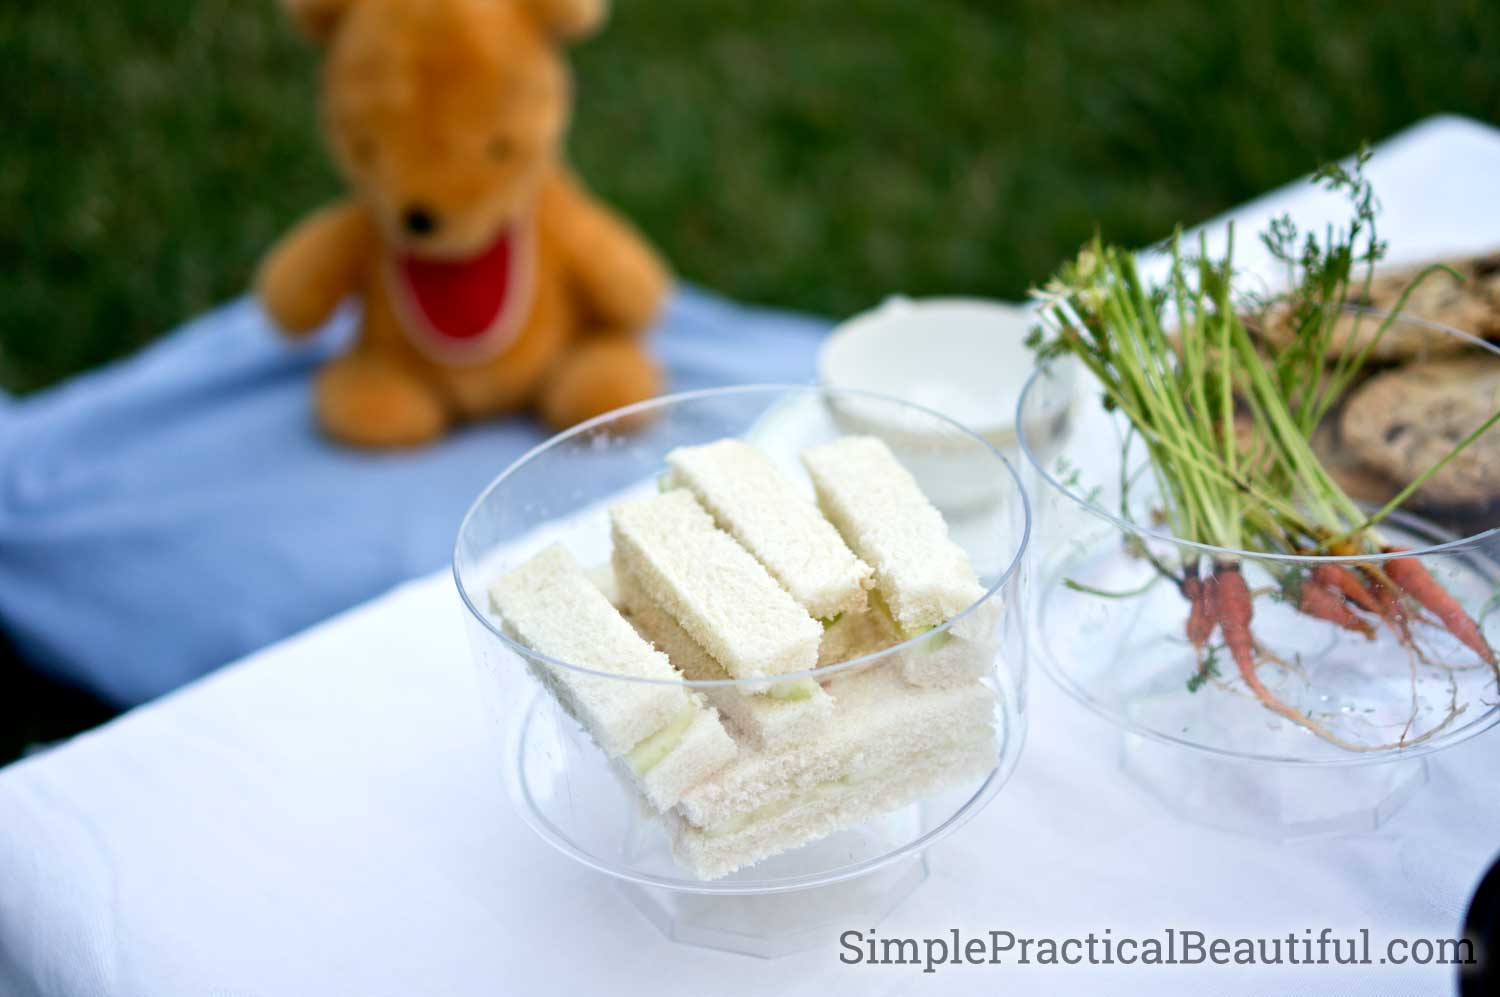 Make finger sandwiches for your tea party guests. They look cute, are fun to eat, and easy to make.